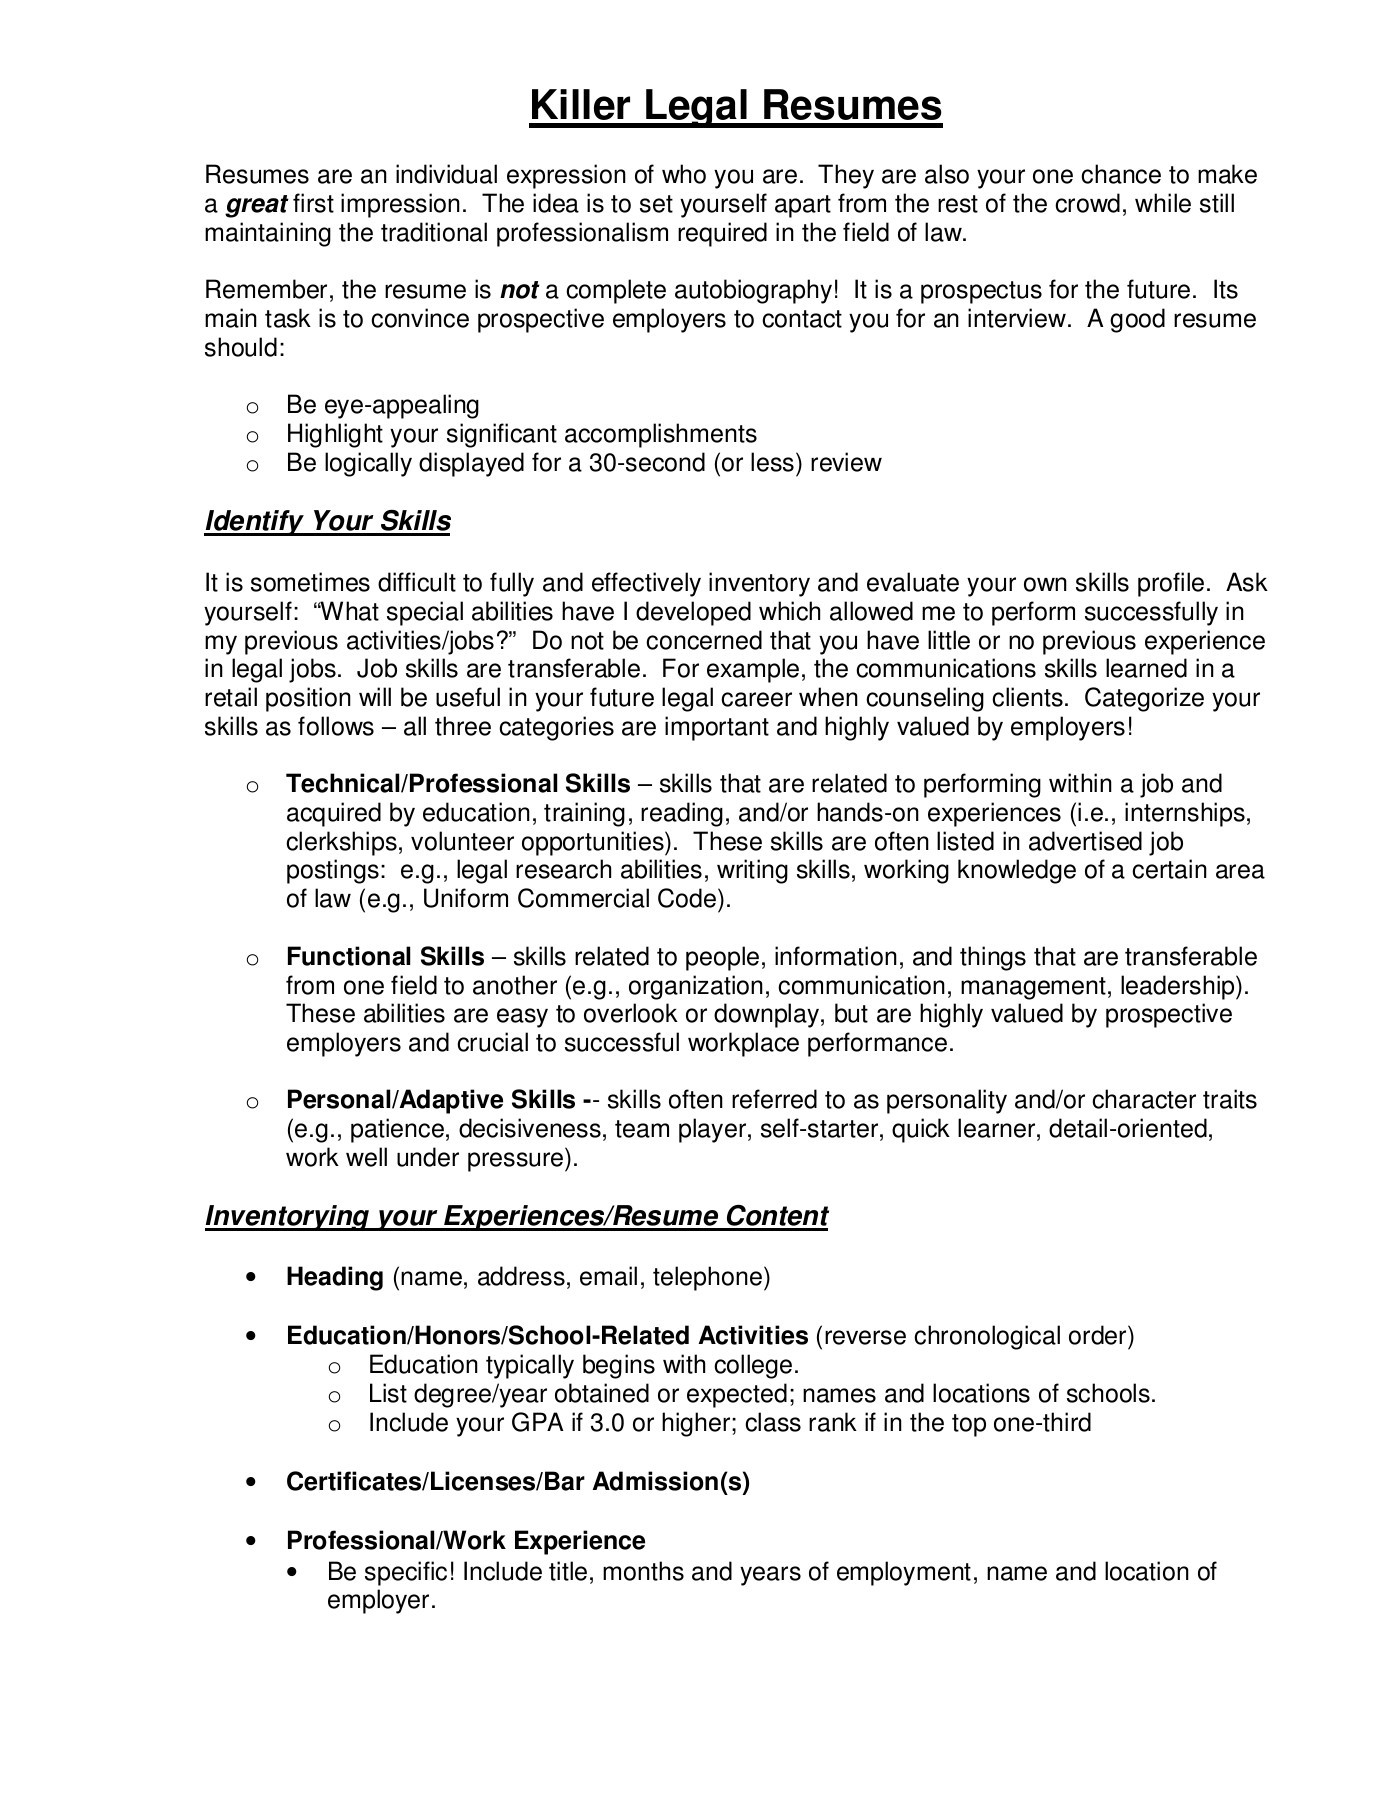 killer legal resumes sturm college of law flip pdf fliphtml5 character traits for resume Resume Character Traits For Resume